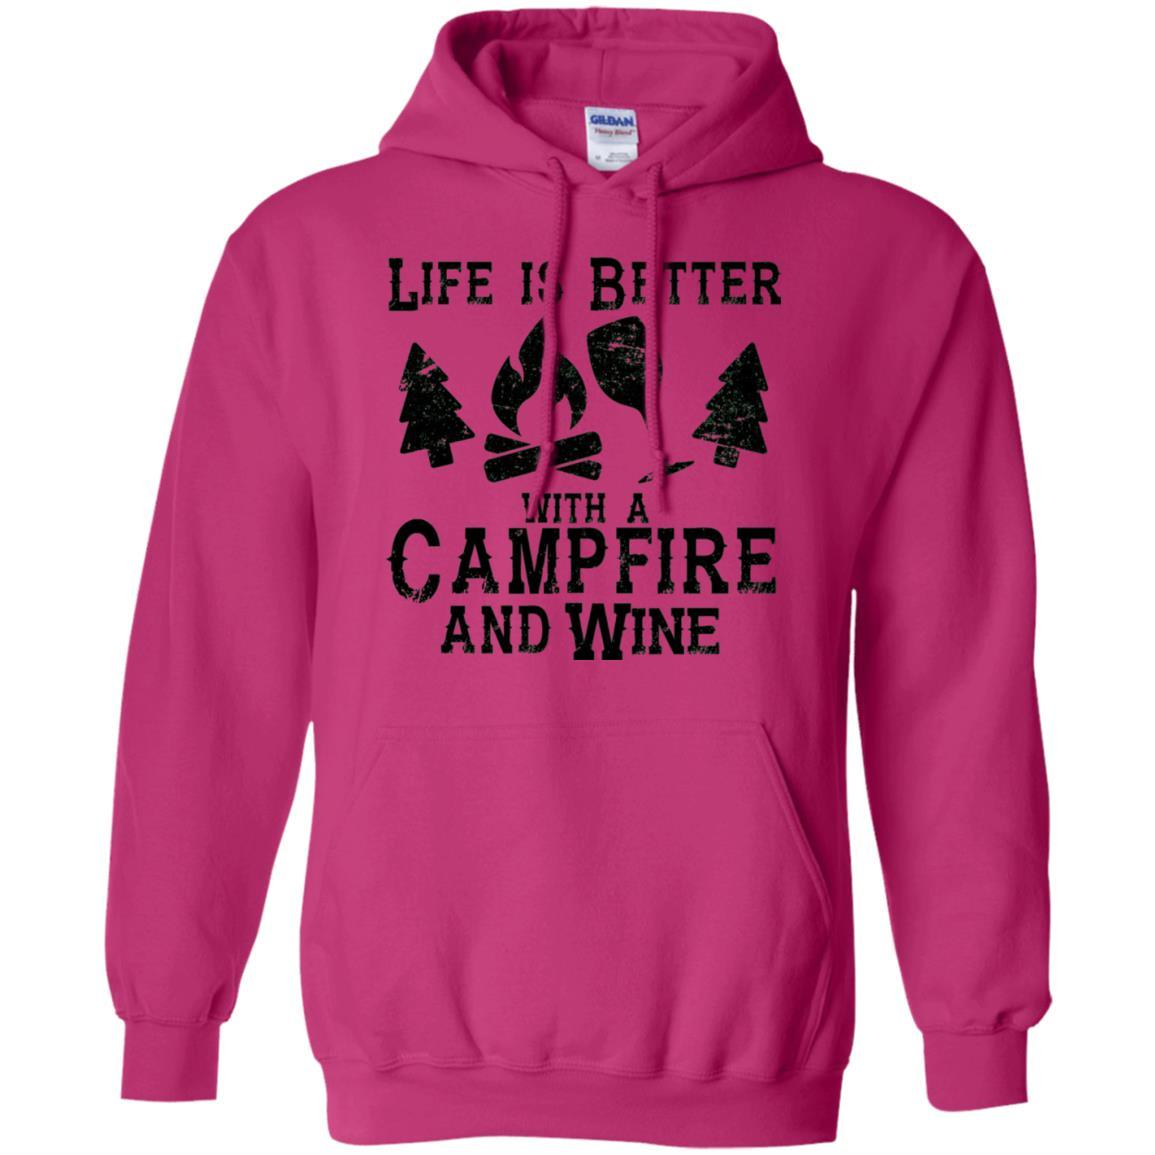 Life is Better with a Campfire and Wine Shirt Camping Funny